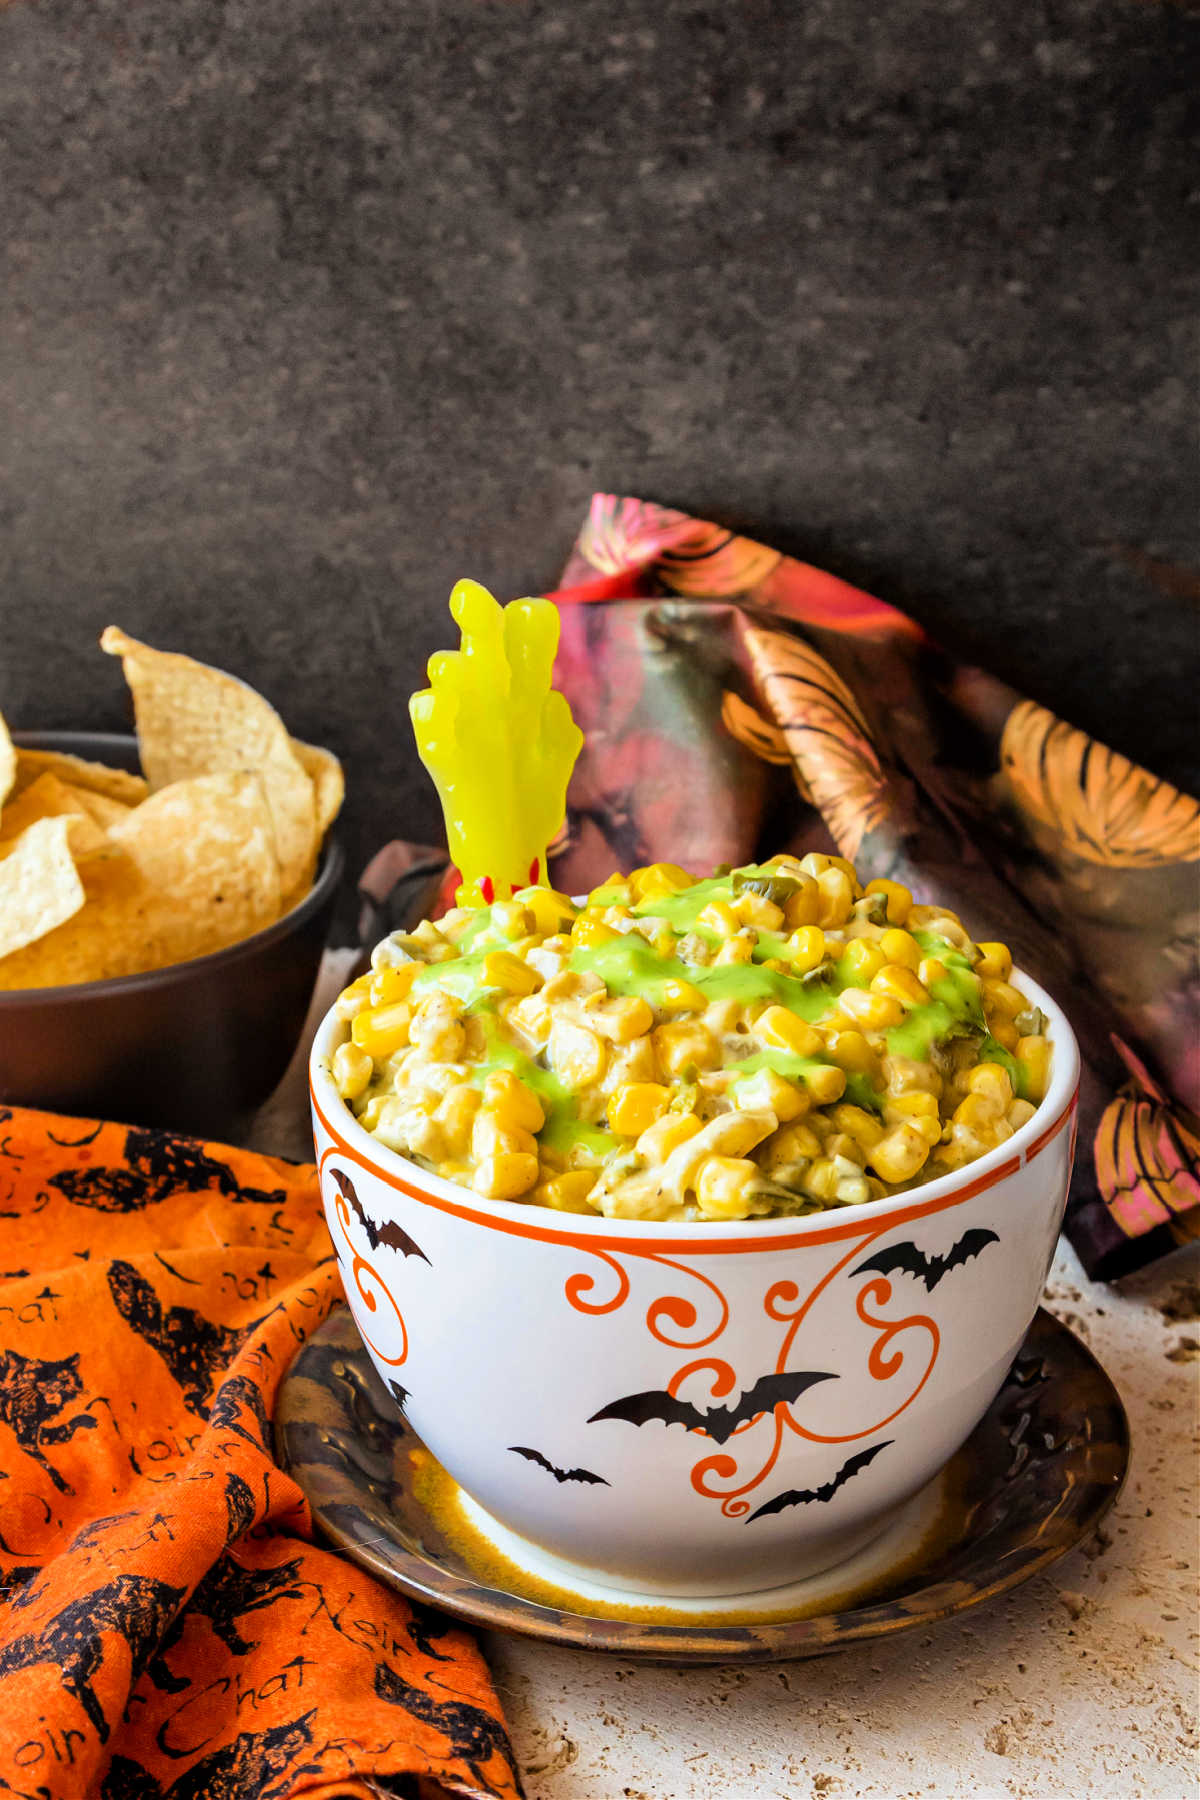 A Halloween-themed bowl of creamy corn dip topped with green guacamole salsa.